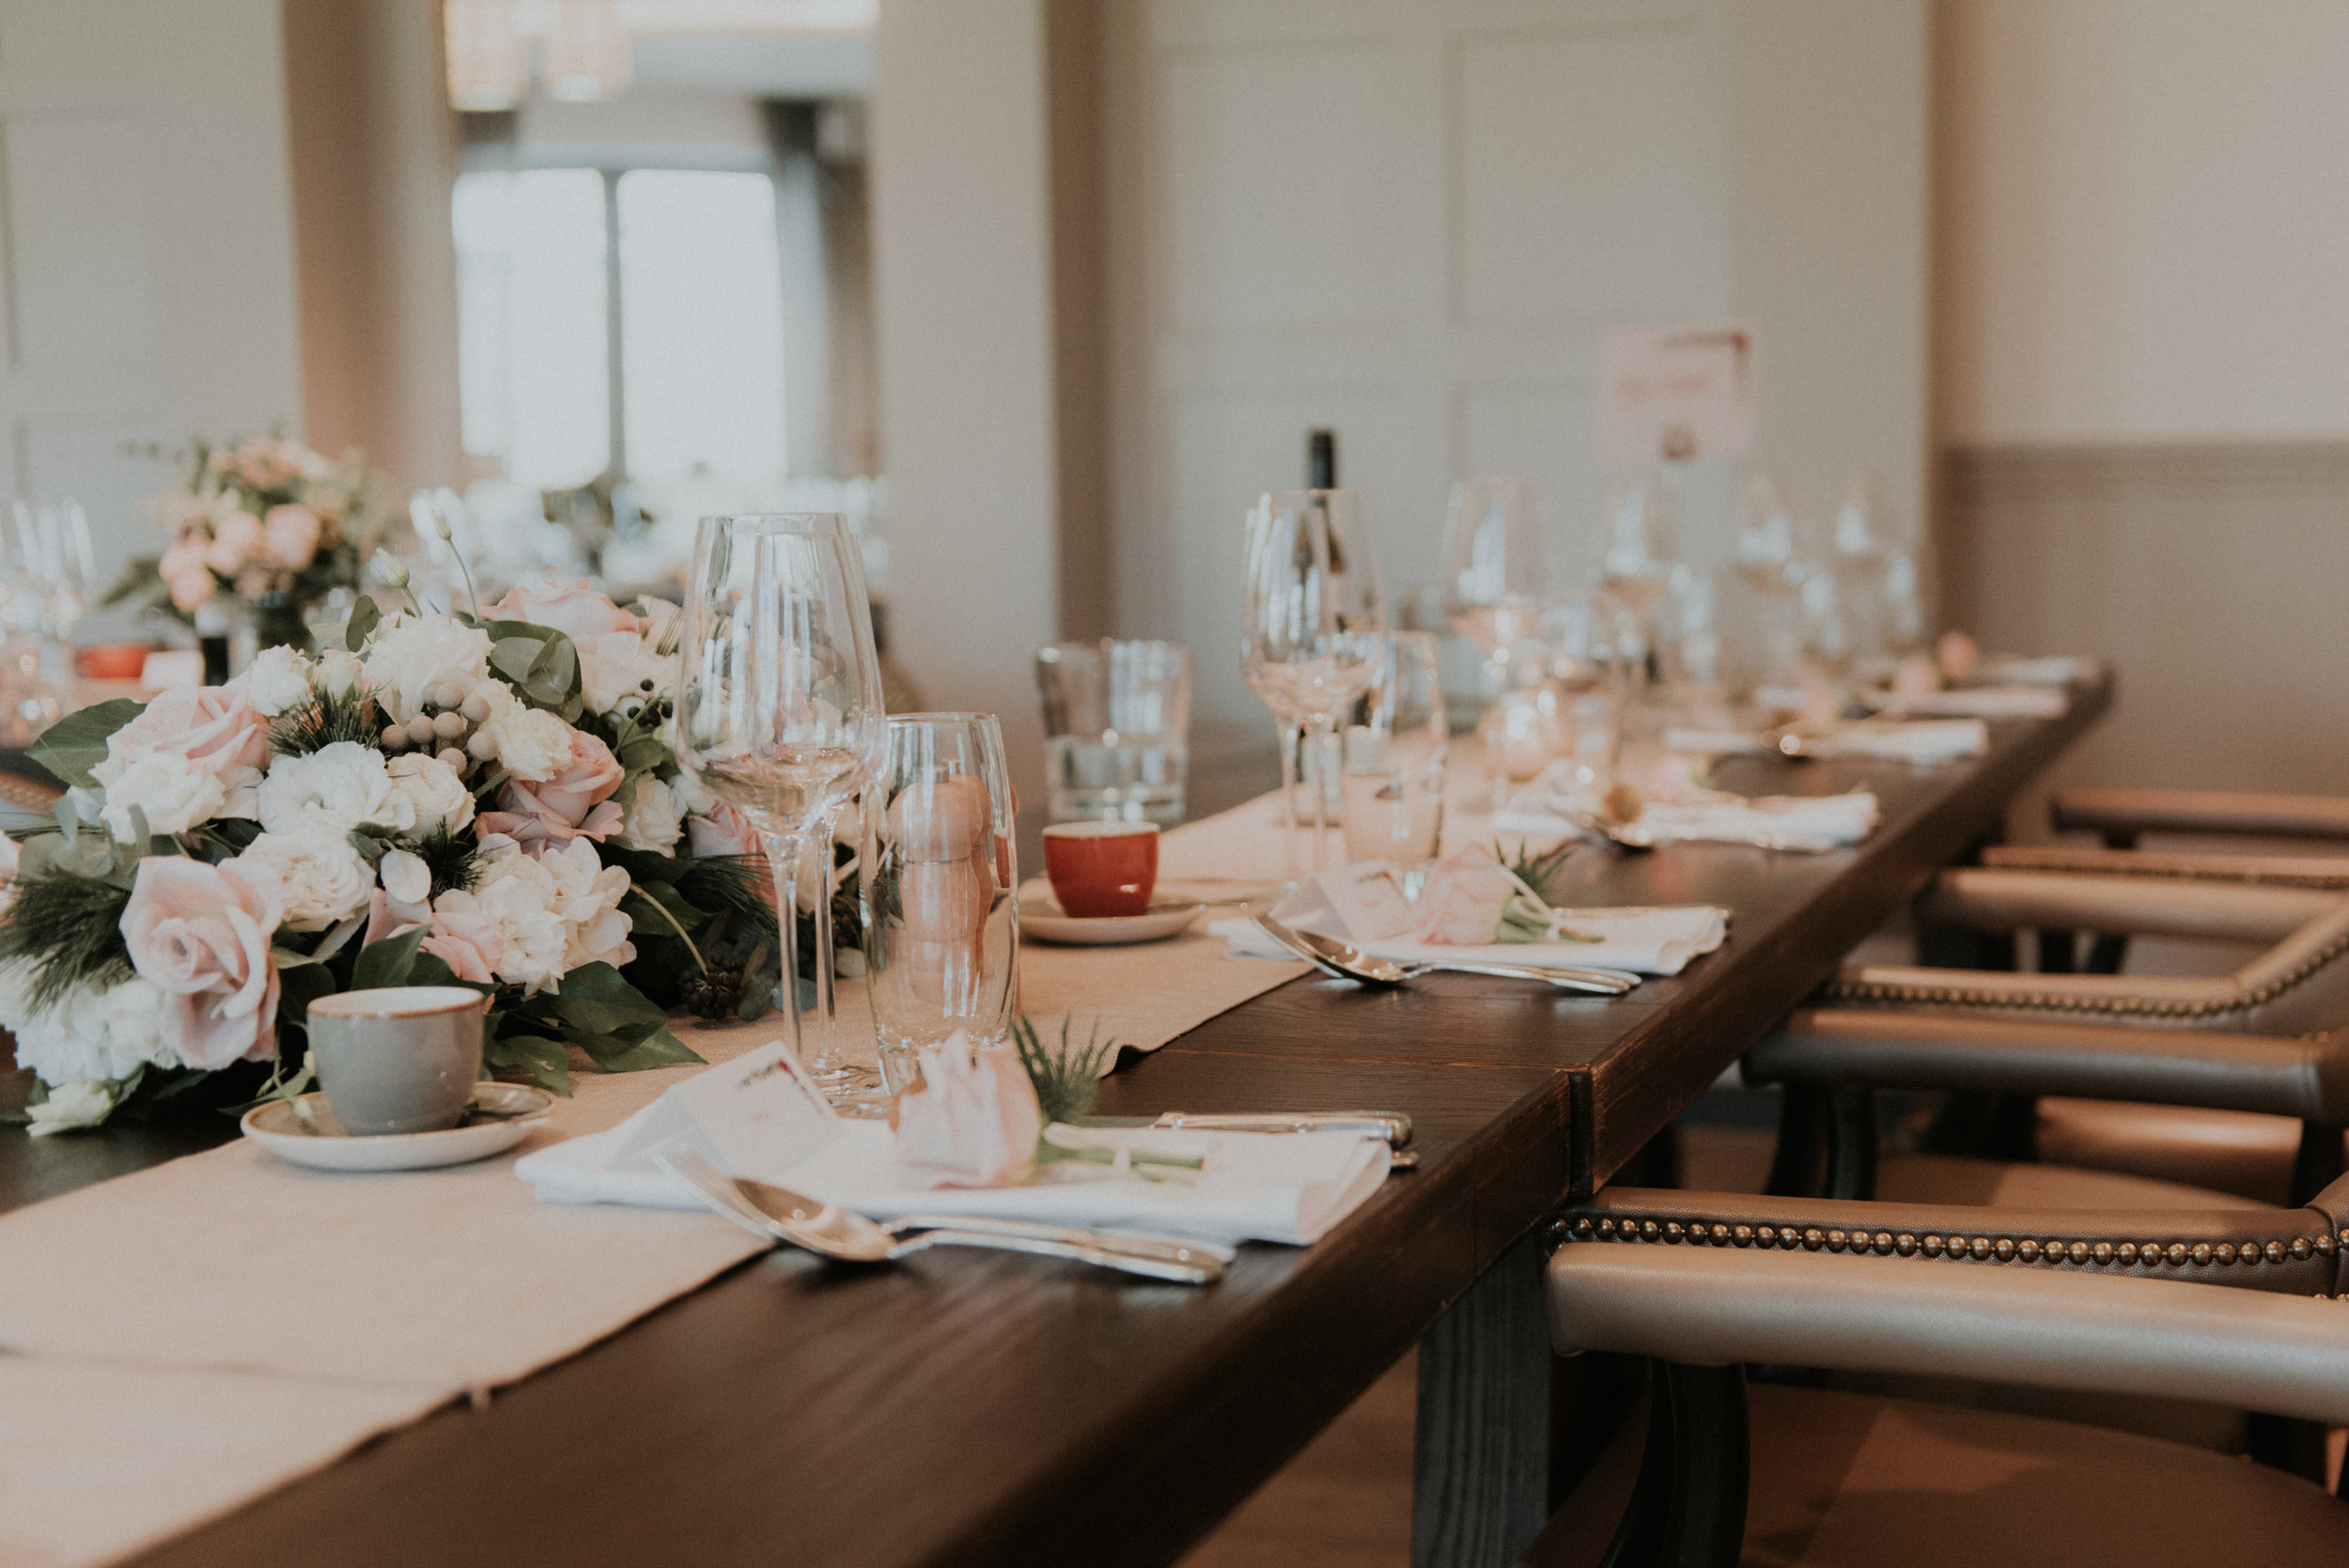 ...Shelley was able to sneak inside to grab some shots before the guests sat down to eat at The Great House in Sonning.